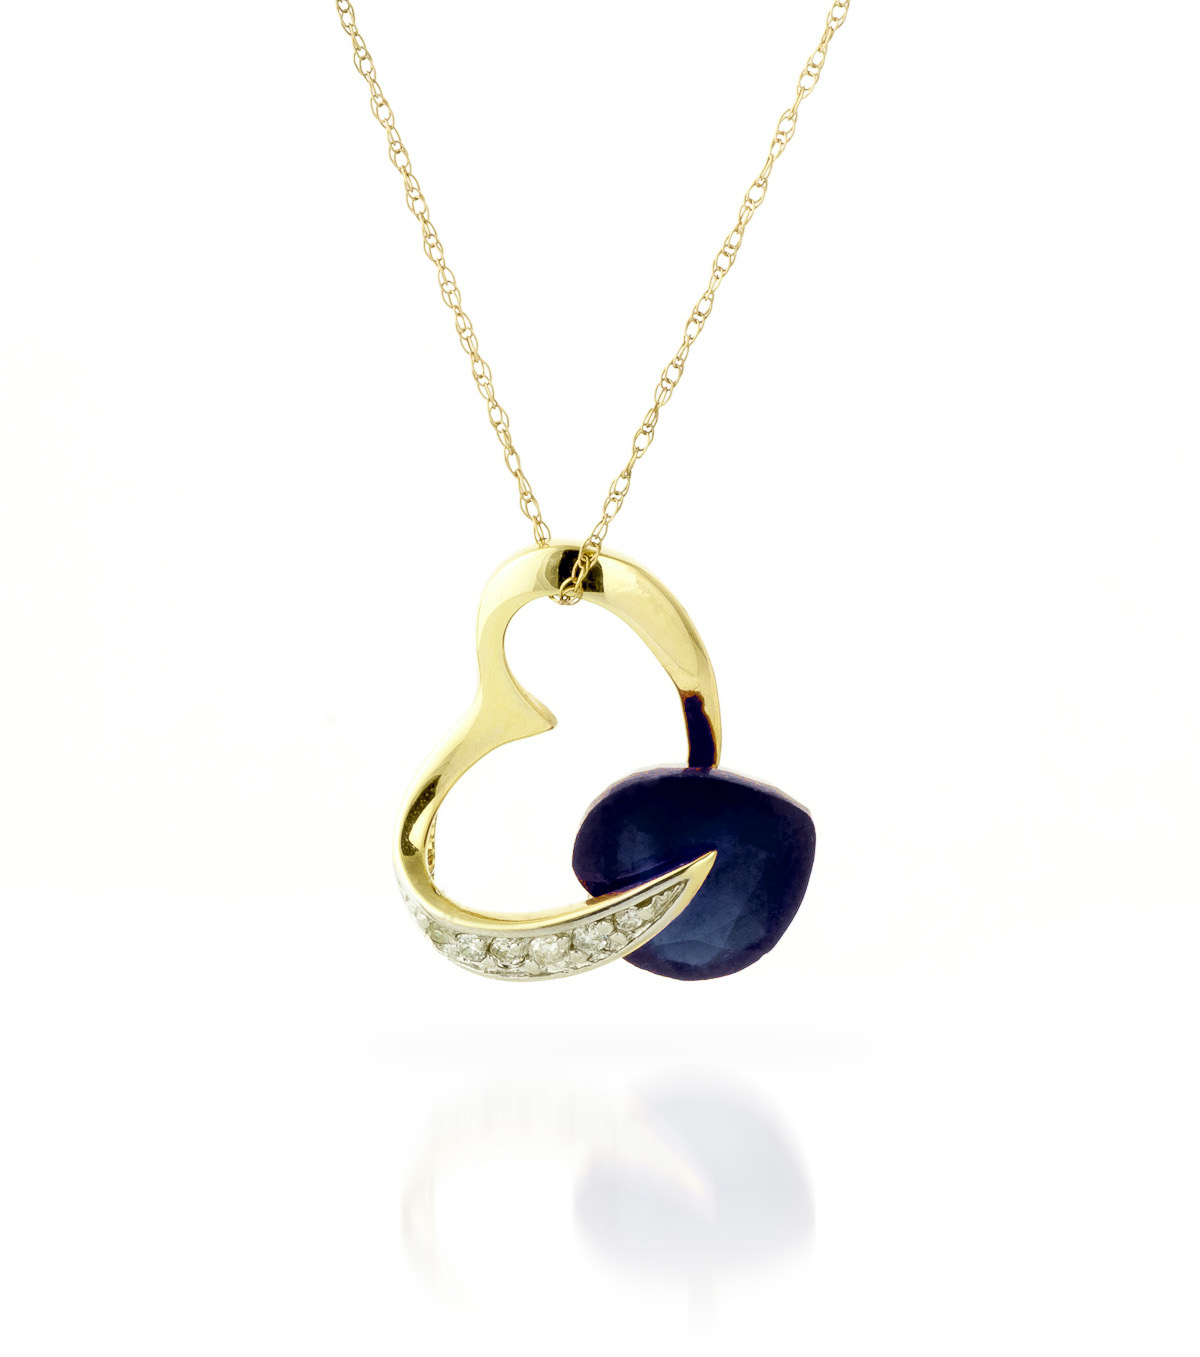 Sapphire and Diamond Pendant Necklace 4.3ct in 9ct Gold